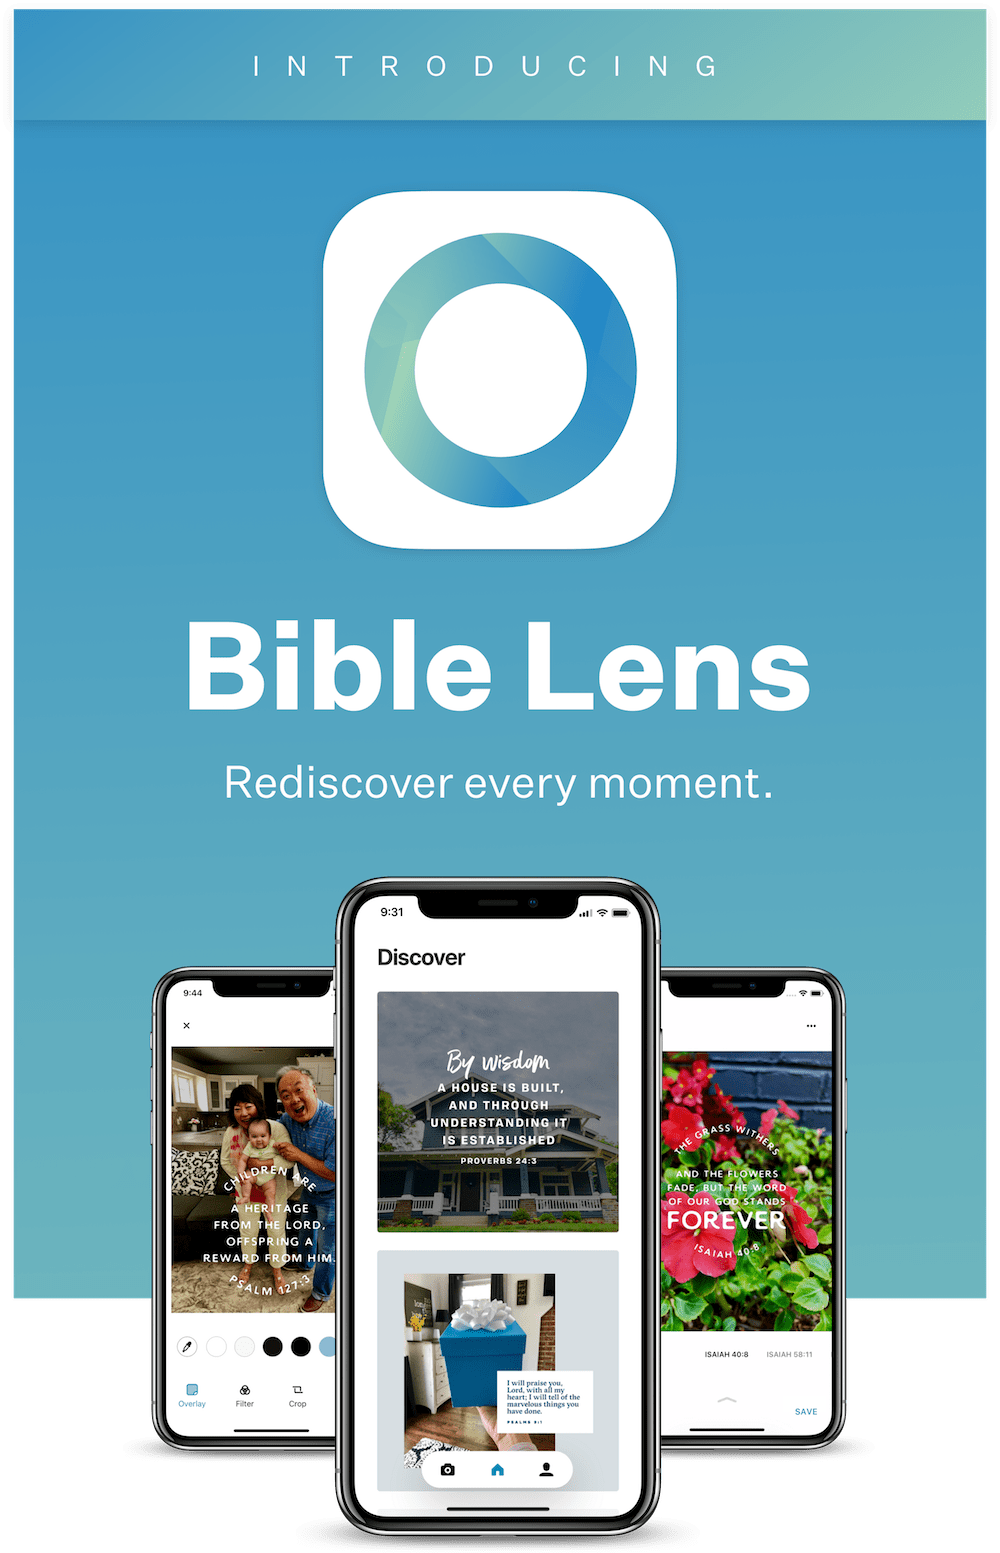 Introducing Bible Lens: The New App from YouVersion - YouVersion